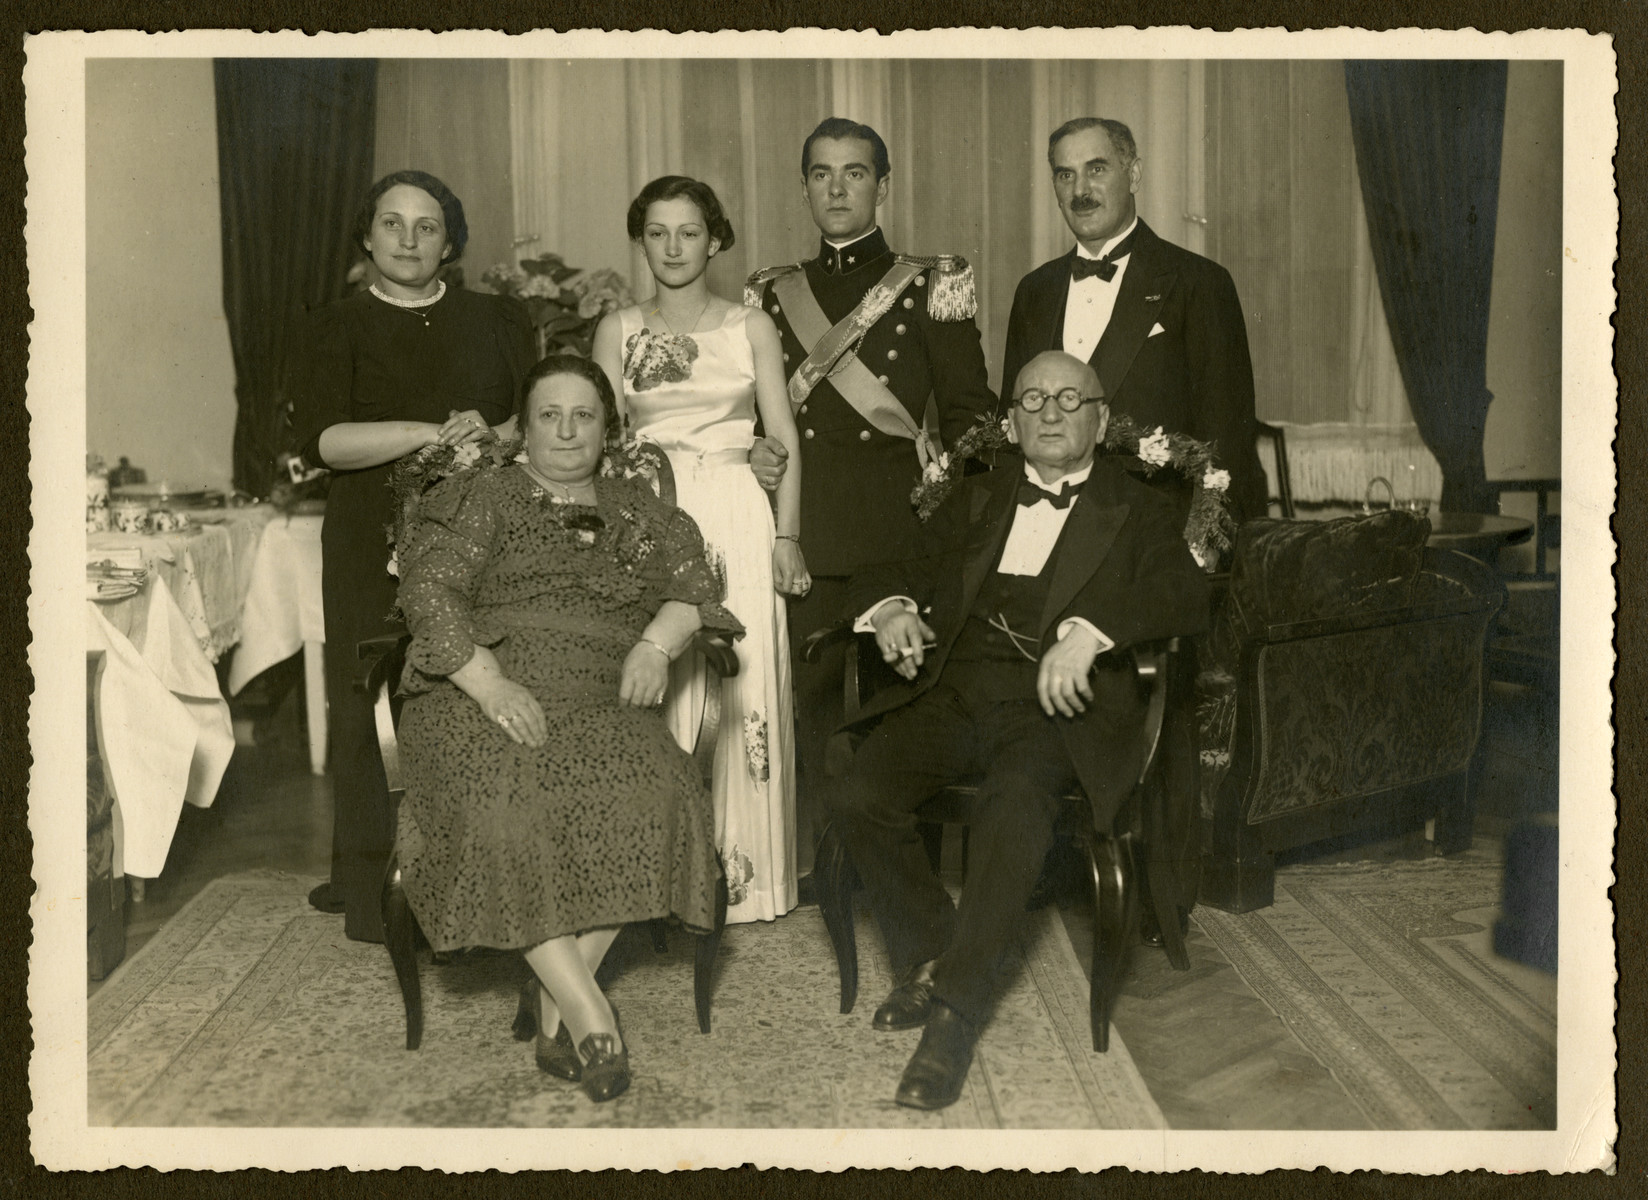 Wedding portrait of Helga Reinsch and Mario Pelligrino.  Seated are Olga and Isaak Abraham.  Standing are Hannie Reinsch,Helga Reinsch, Mario Pelligrino, and Karl Reinsch.